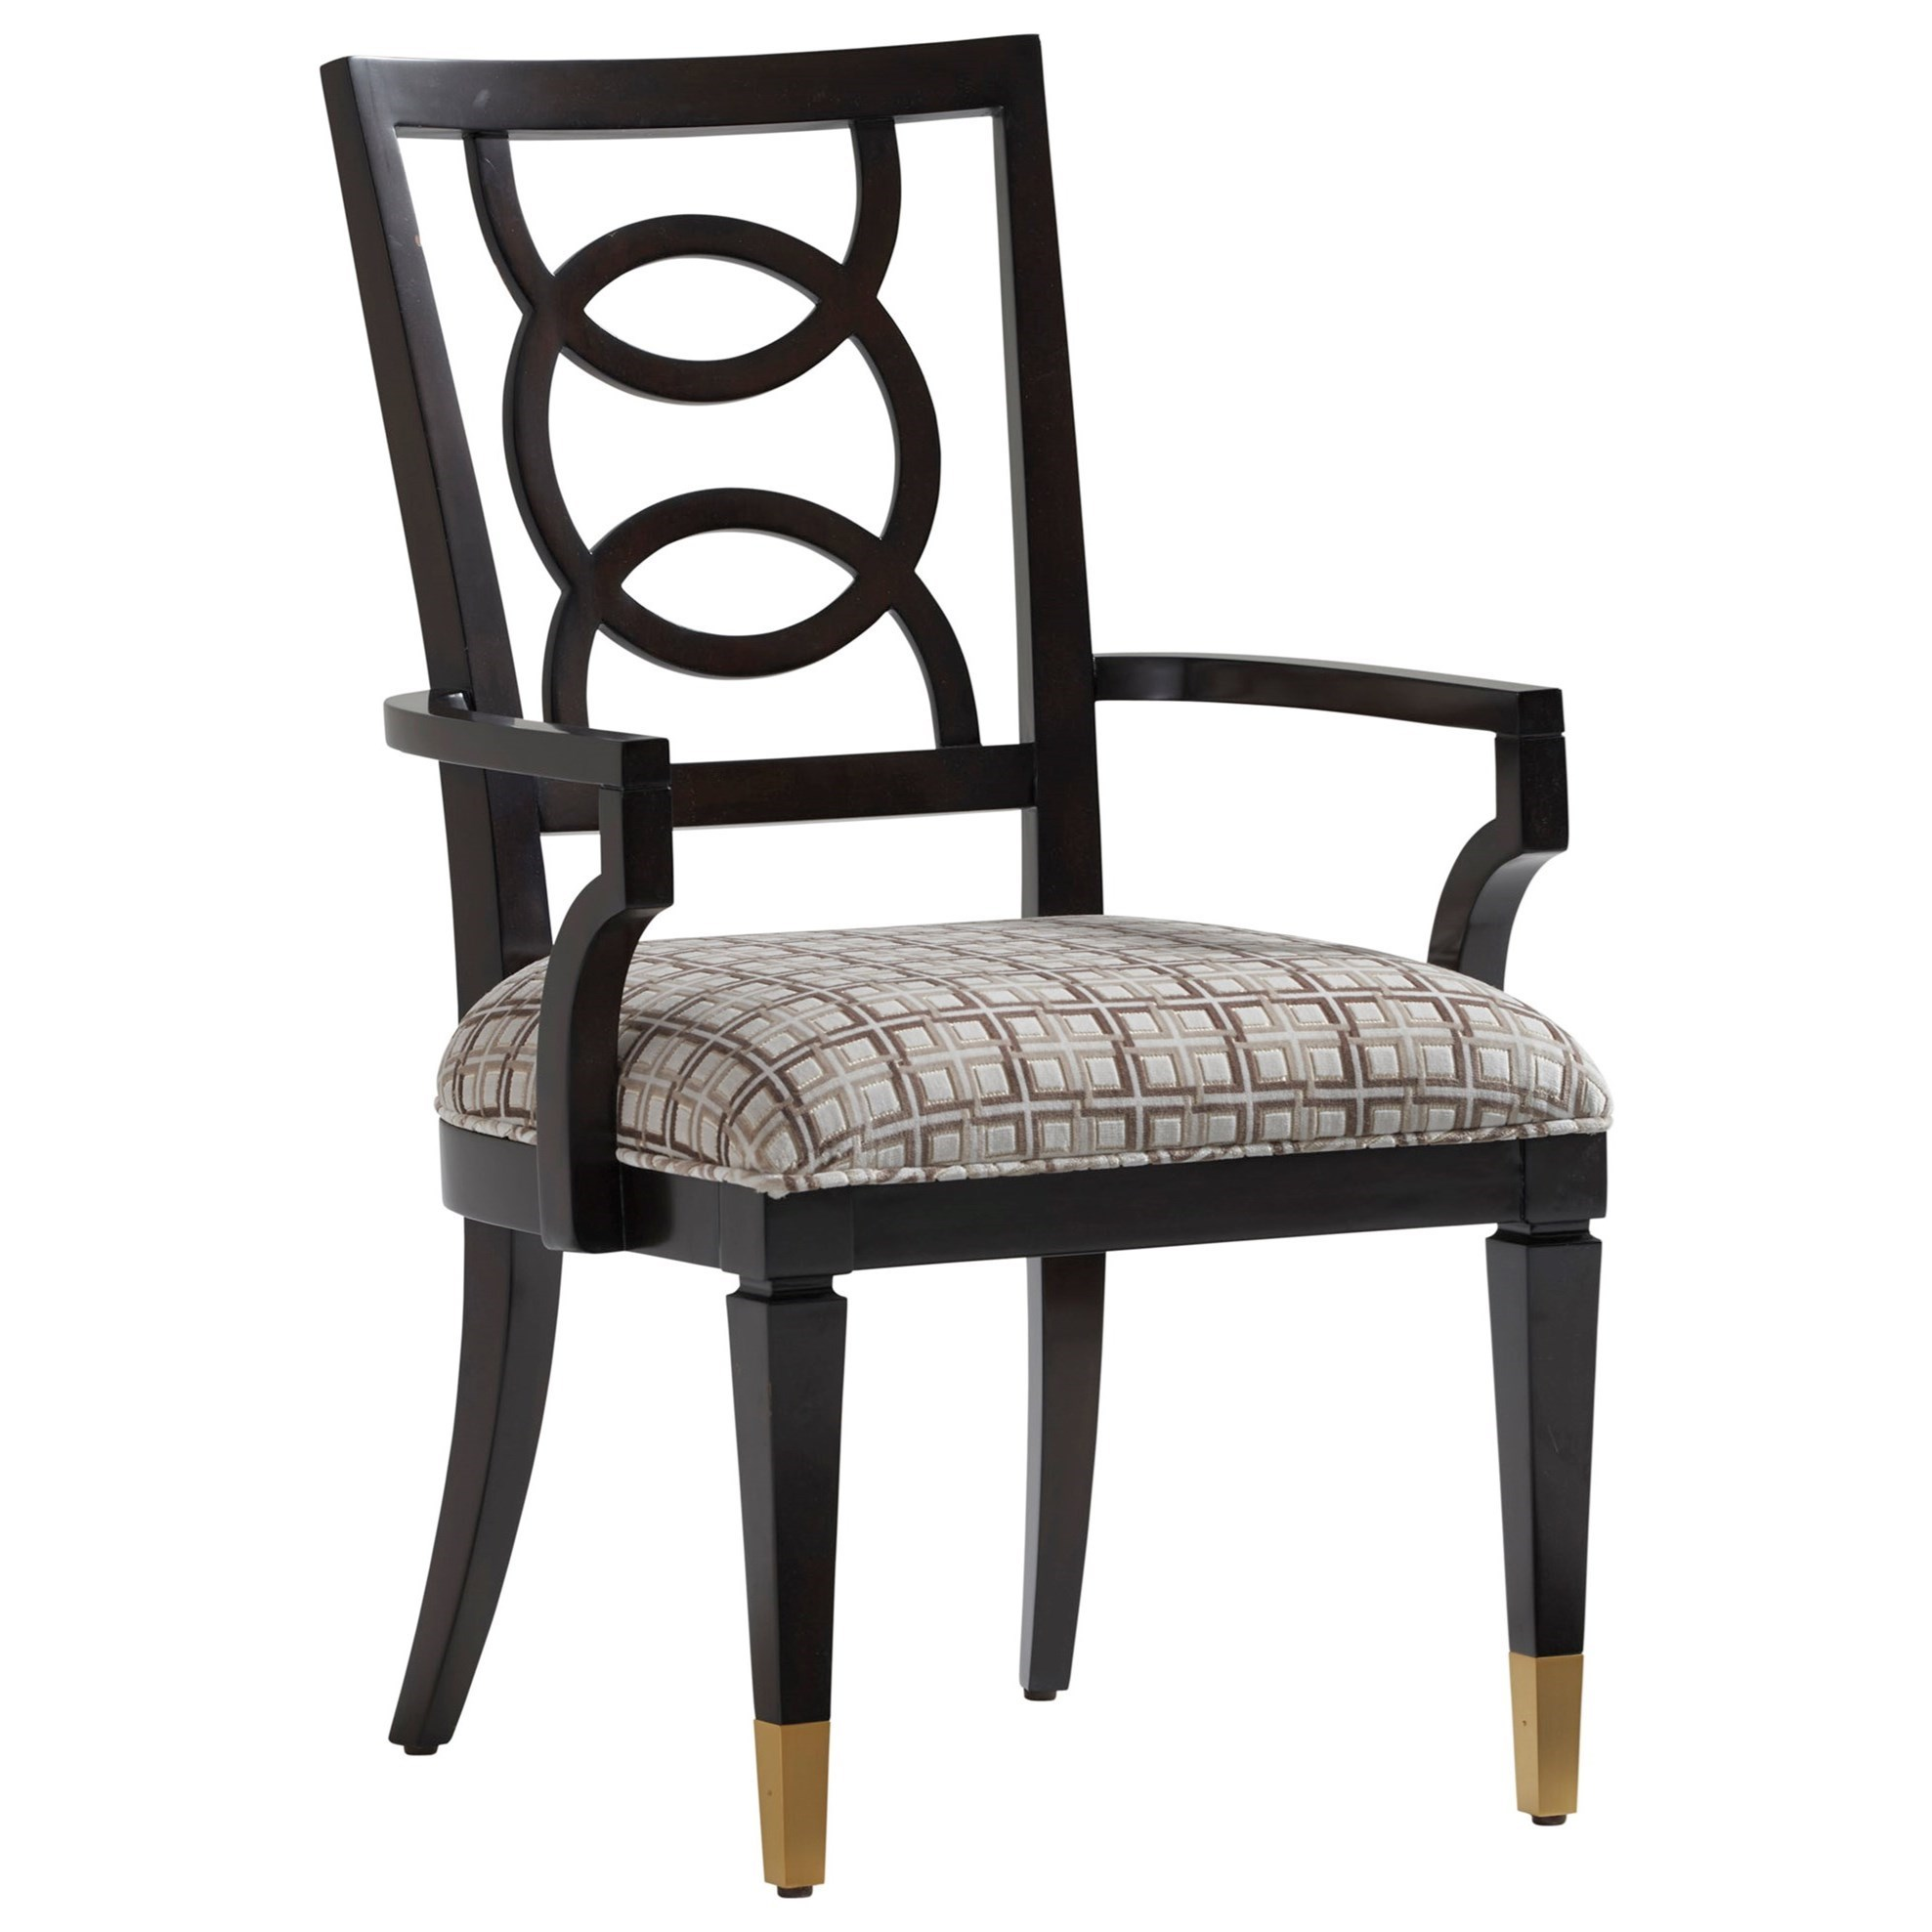 Pierce Arm Chair with Ring Splat Back and Upholstered Seat, Customizable Fabric